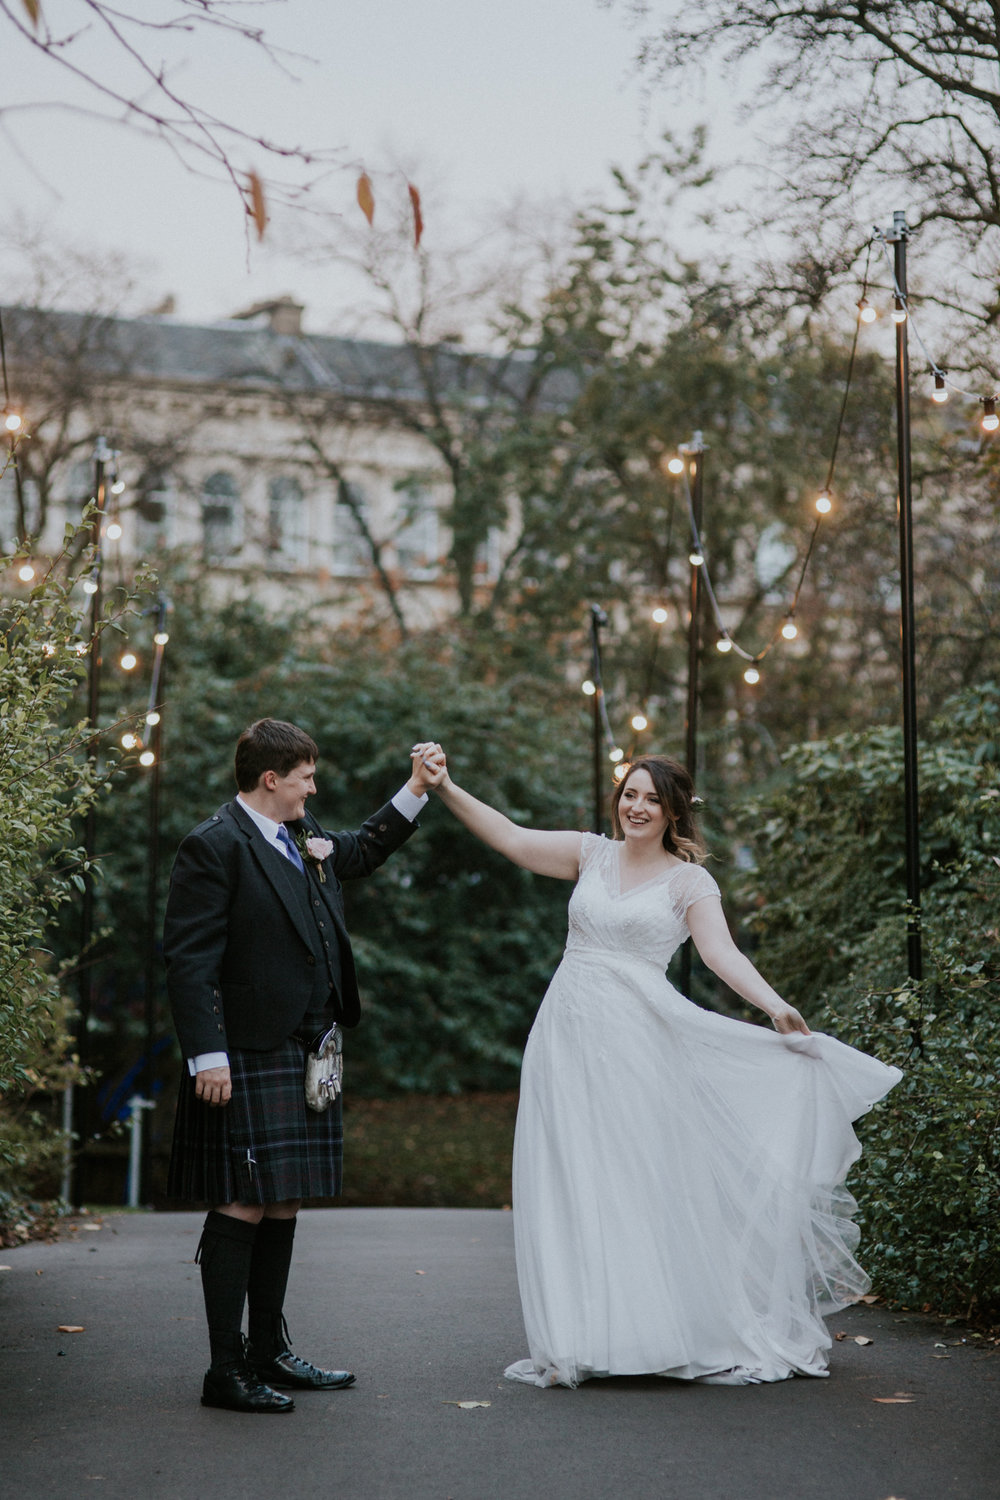 Contemporary wedding photography in Scotland, Glasgow and Edinburgh